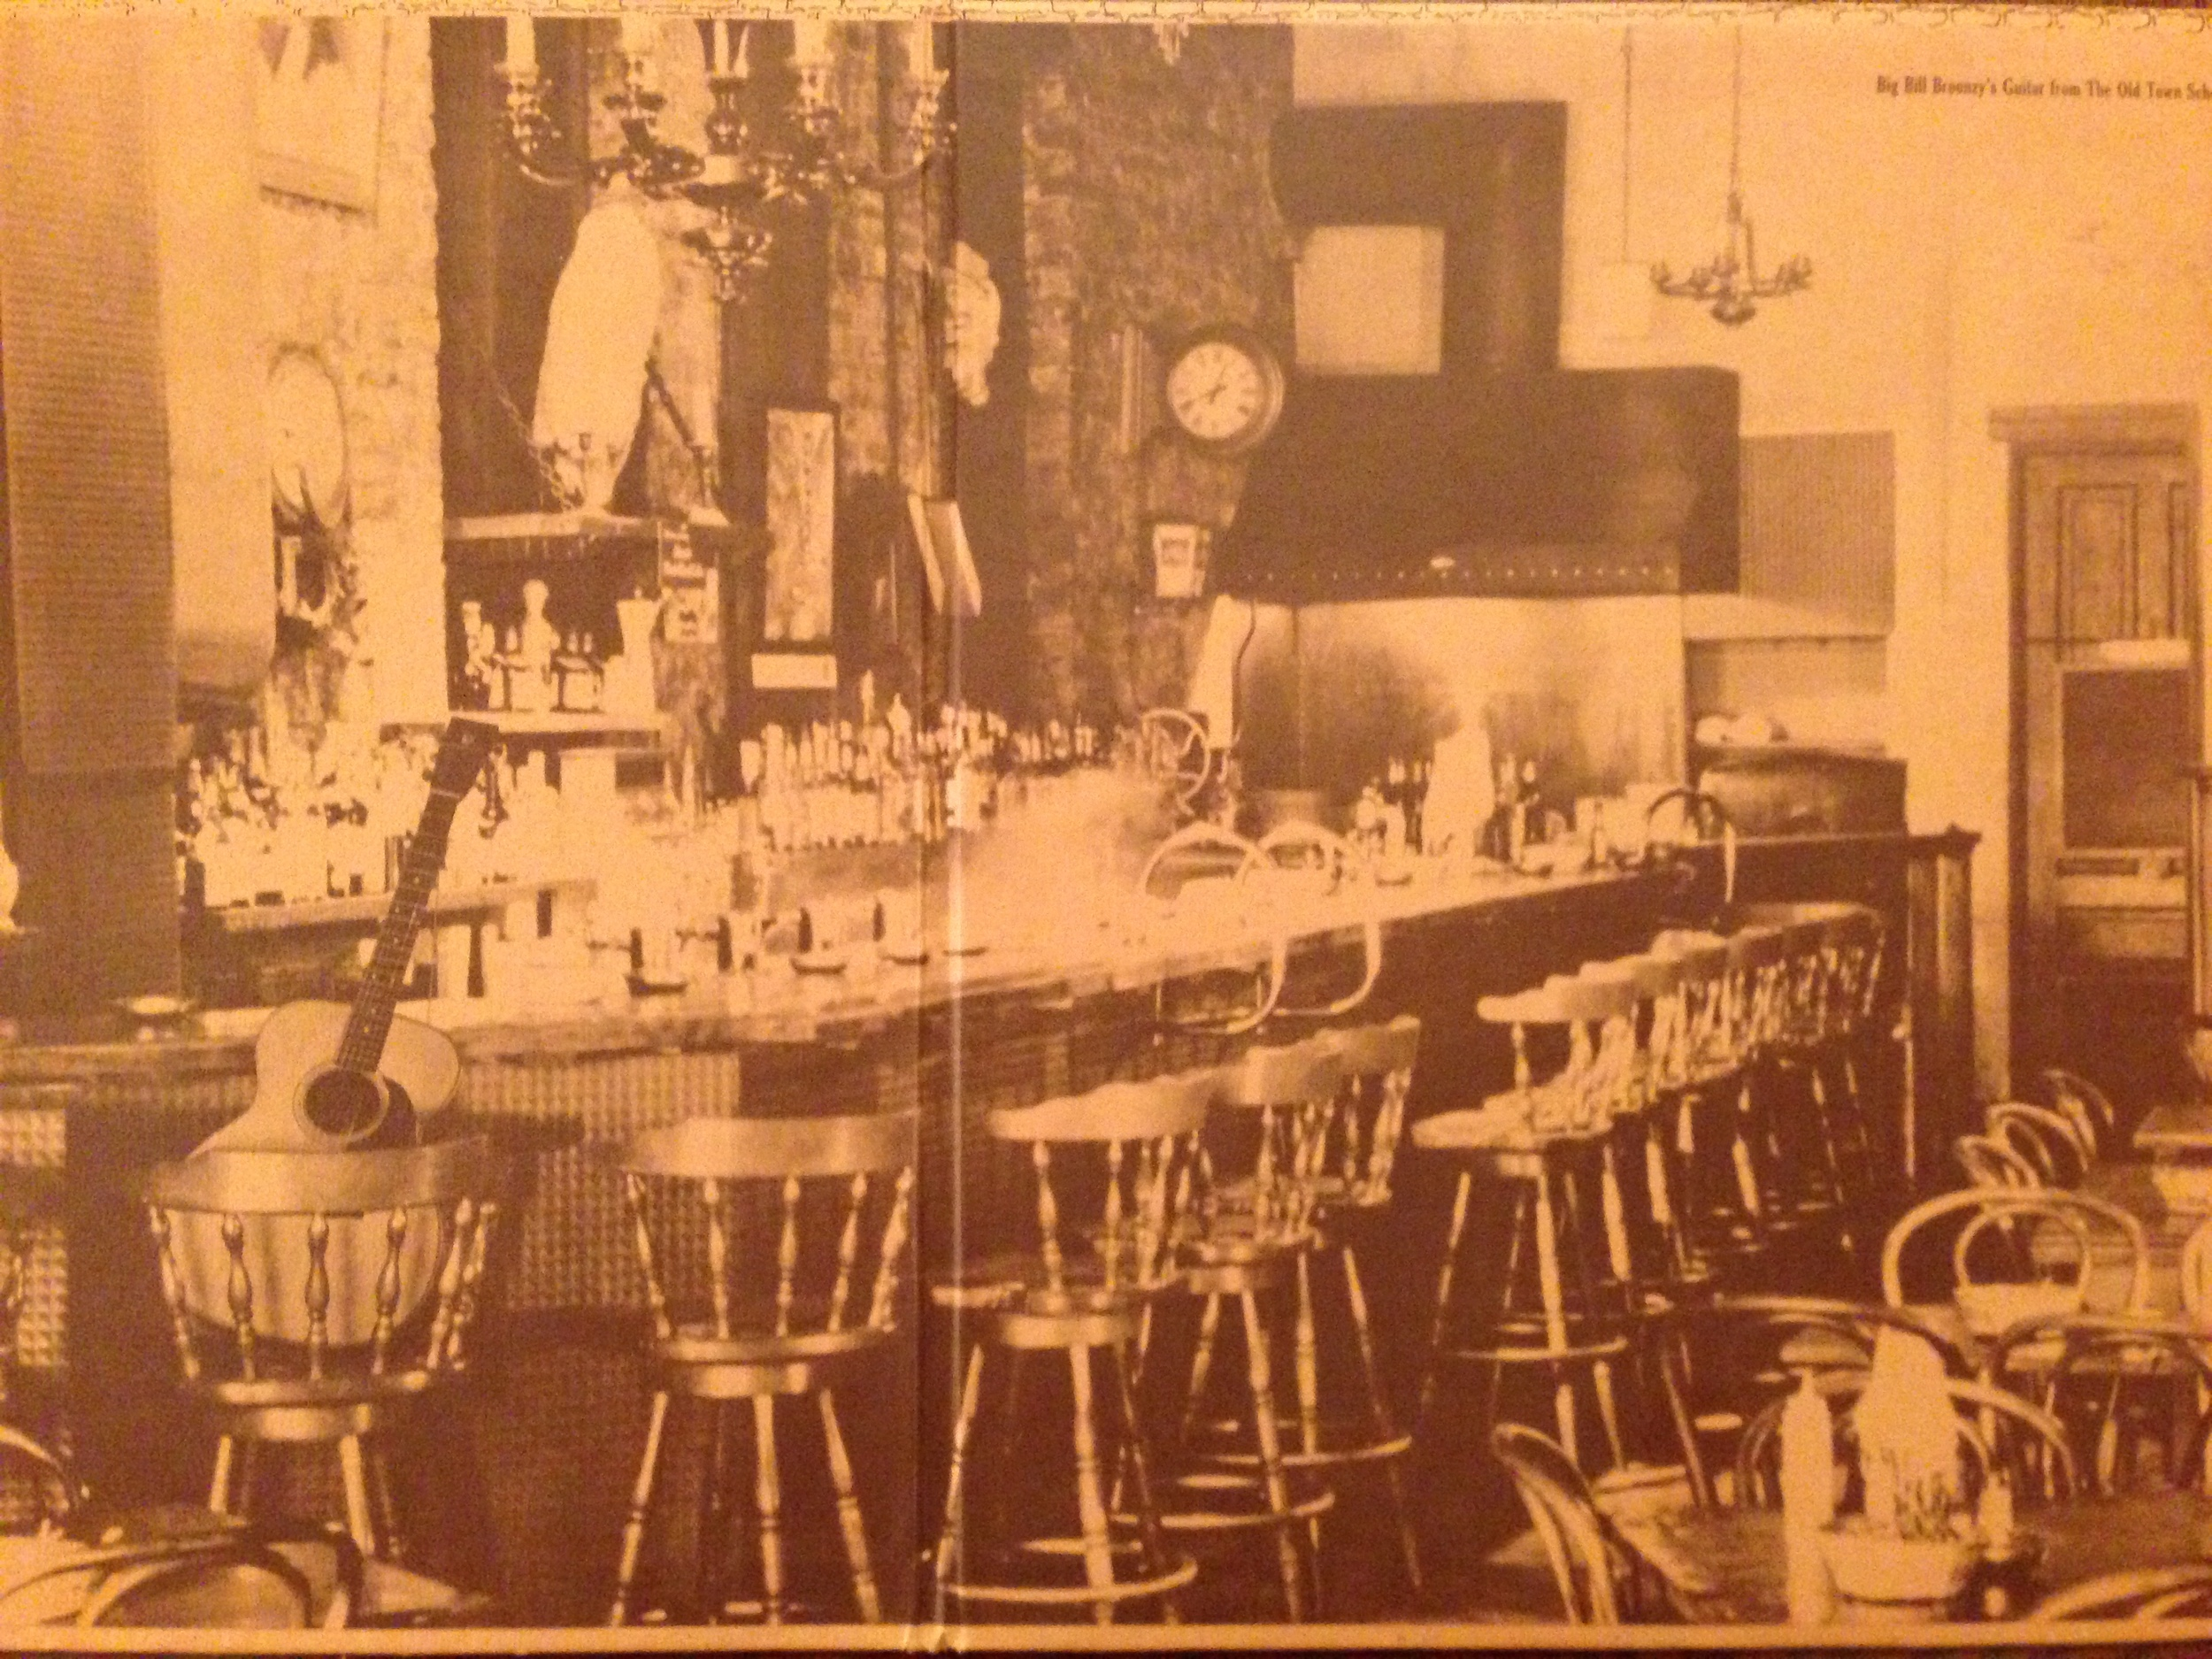 """A look at The Earl of Old Town circa 1970, as shown in the liner notes of """"The Gathering at the Earl of Old Town""""."""